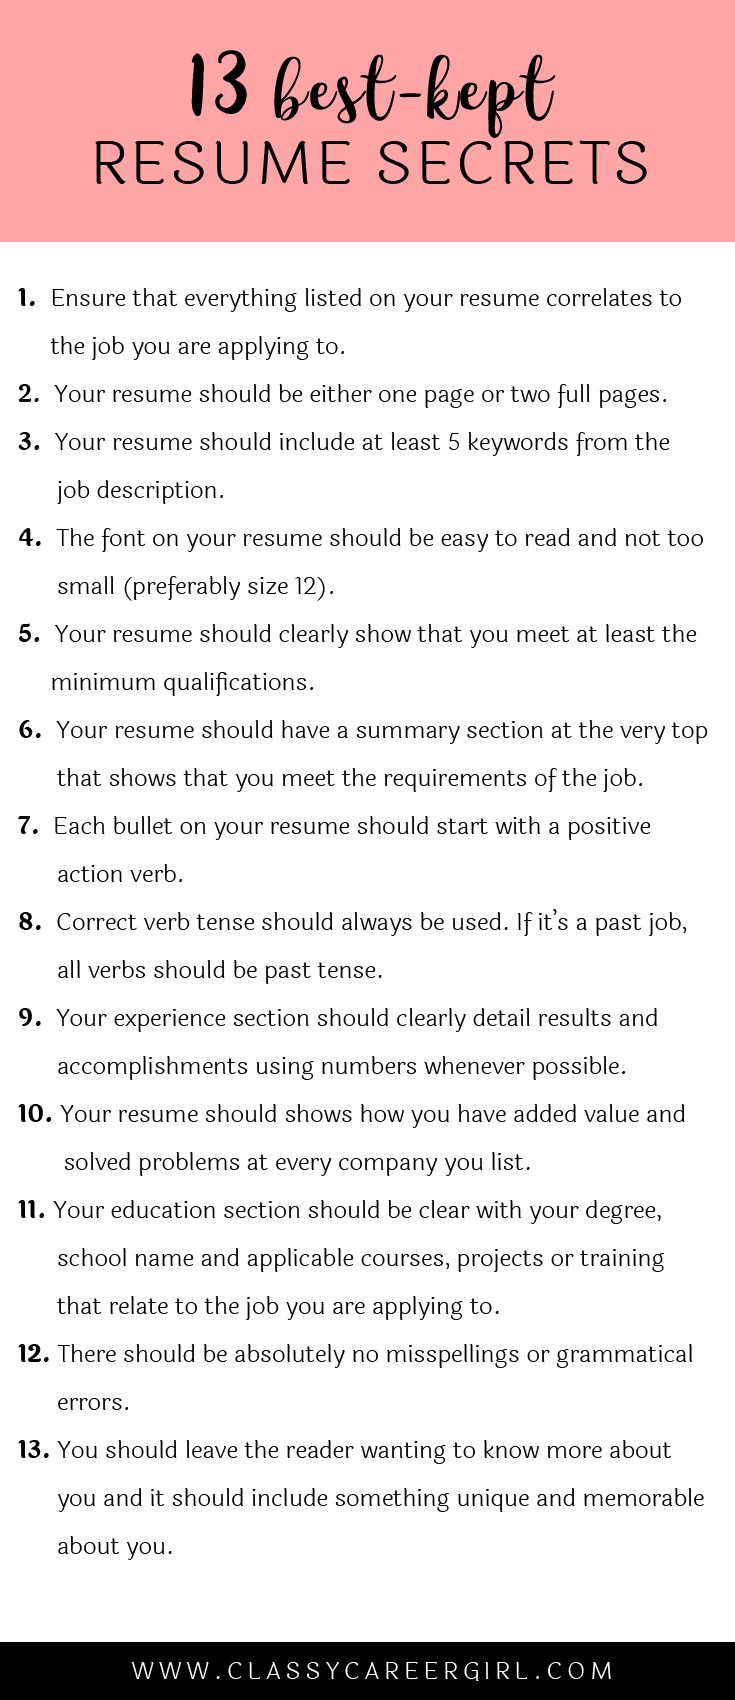 Opposenewapstandardsus  Fascinating  Ideas About Resume On Pinterest  Cv Format Resume Cv And  With Fascinating Some Hiring Managers Will Toss Your Resume Out If You Dont Know These  With Easy On The Eye How To Right A Resume Also Special Skills Resume In Addition Resume References Template And Free Resume Templates Online As Well As Customer Service Resume Samples Additionally Nurse Resume Template From Pinterestcom With Opposenewapstandardsus  Fascinating  Ideas About Resume On Pinterest  Cv Format Resume Cv And  With Easy On The Eye Some Hiring Managers Will Toss Your Resume Out If You Dont Know These  And Fascinating How To Right A Resume Also Special Skills Resume In Addition Resume References Template From Pinterestcom